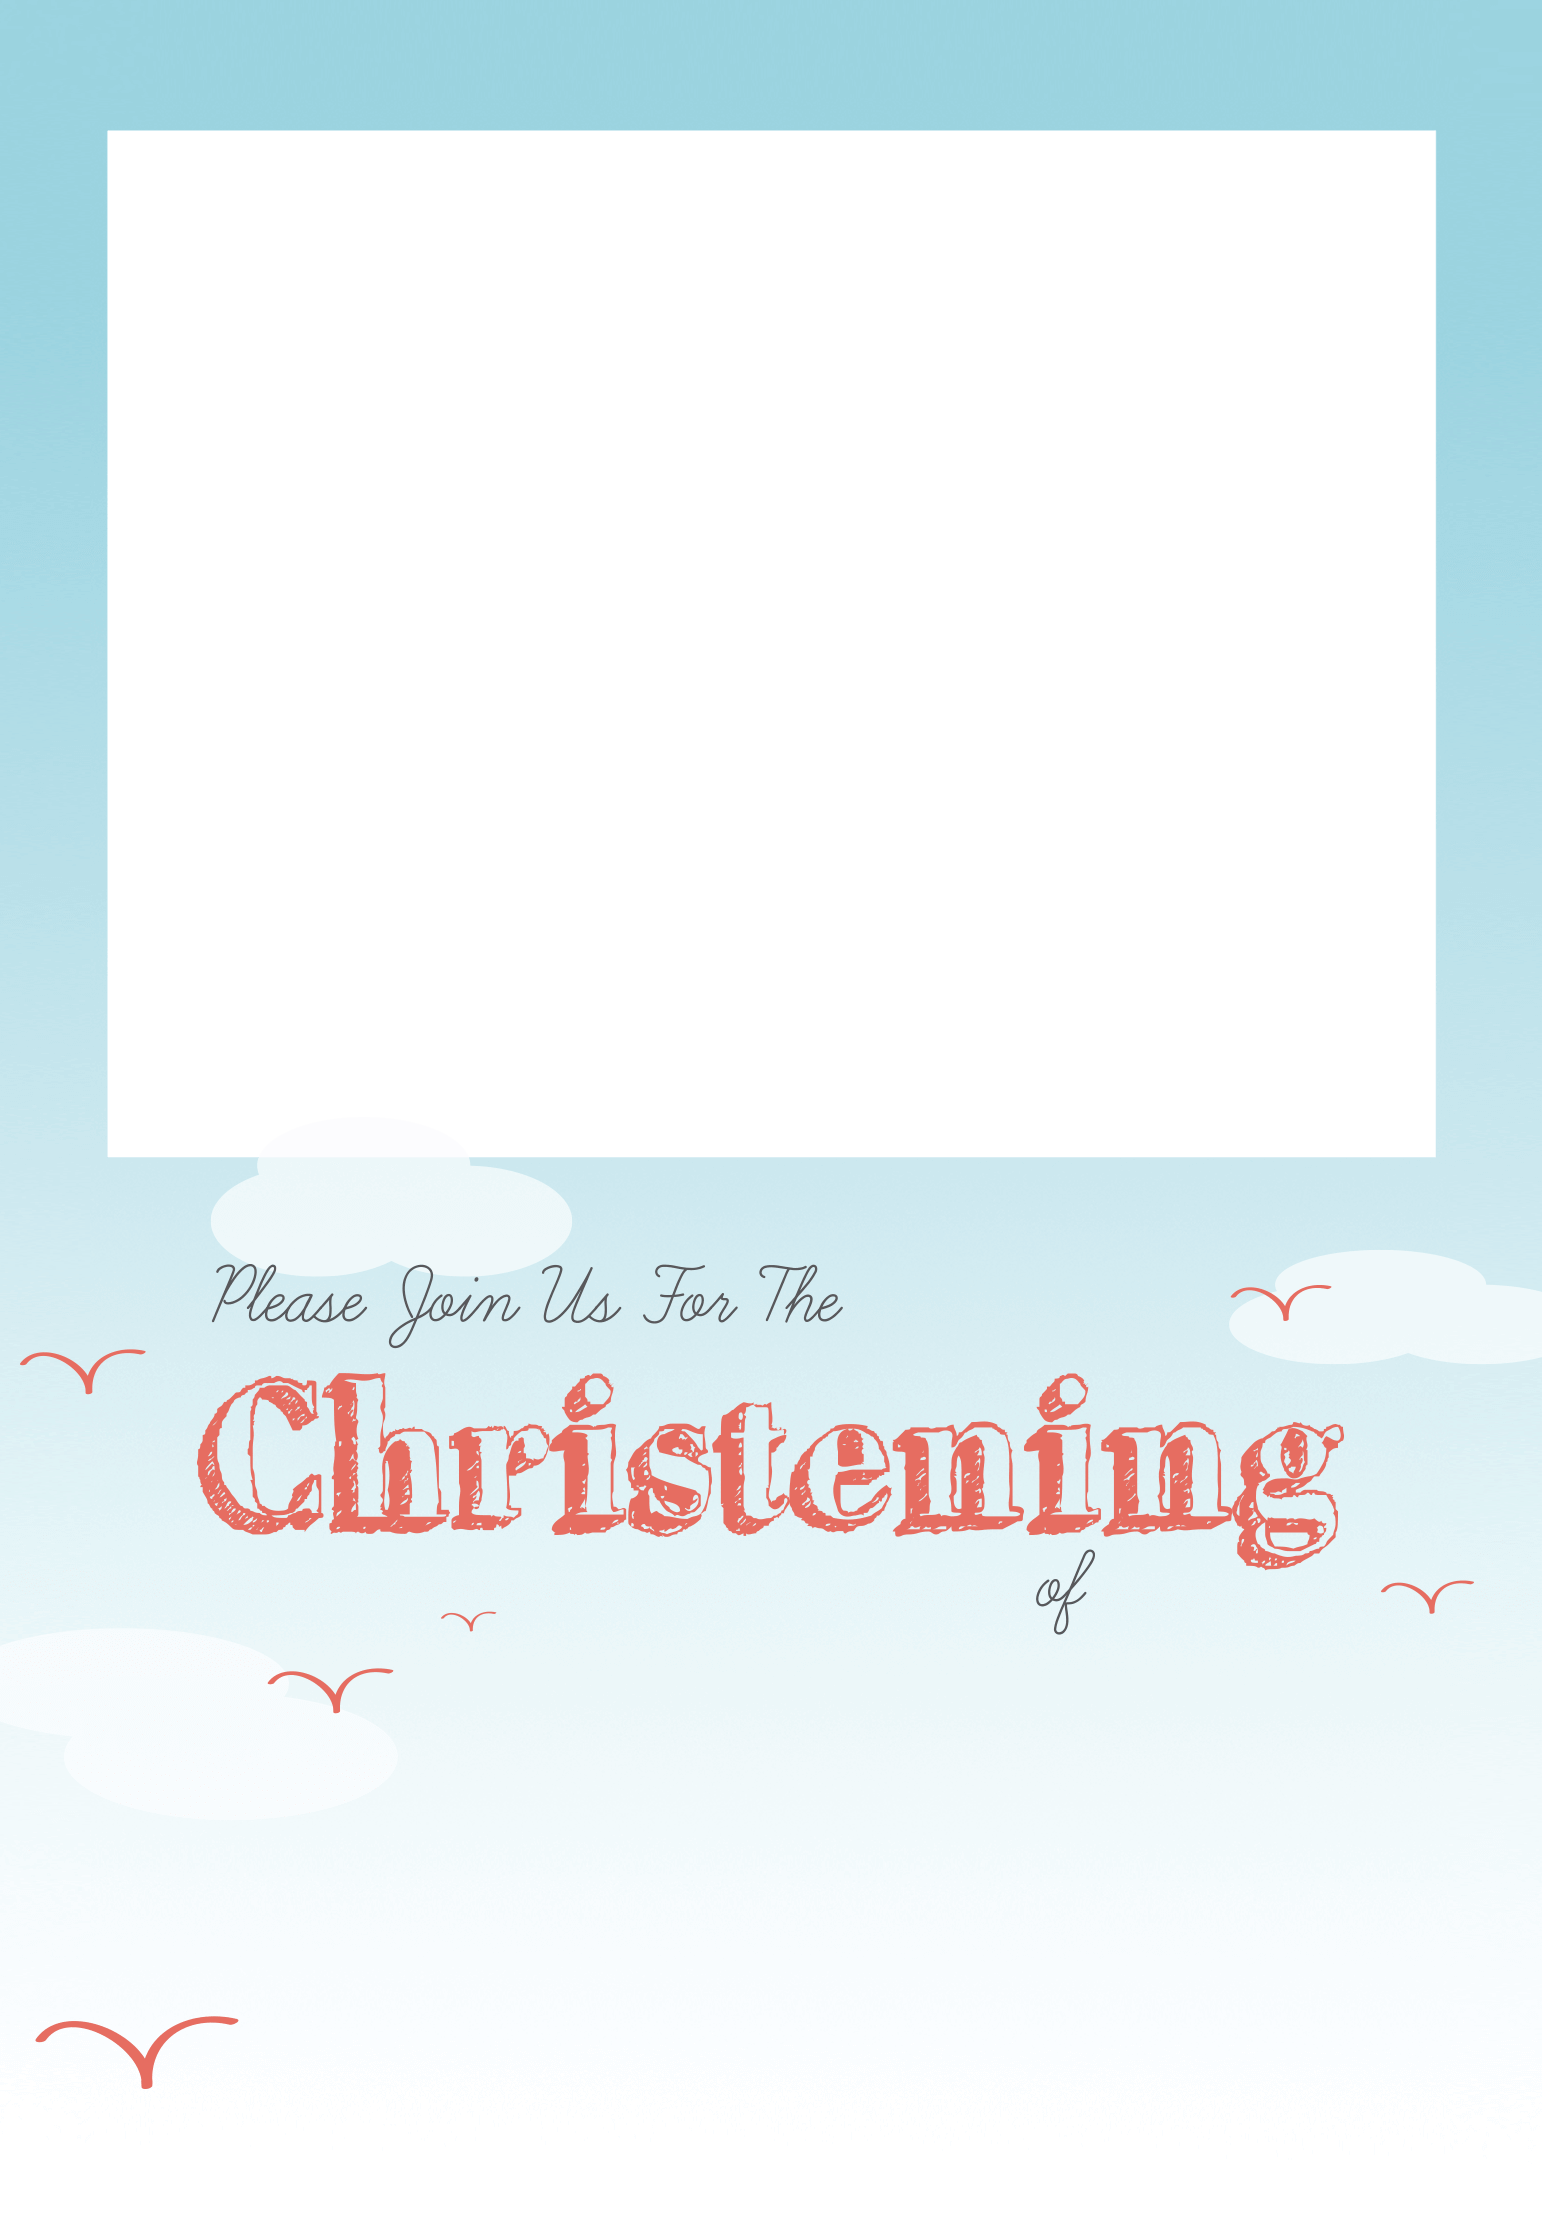 Download All Smiles Free Printable Christening Template Greetings - Christening  Invitation Template Png - Full Size PNG Image - PNGkit